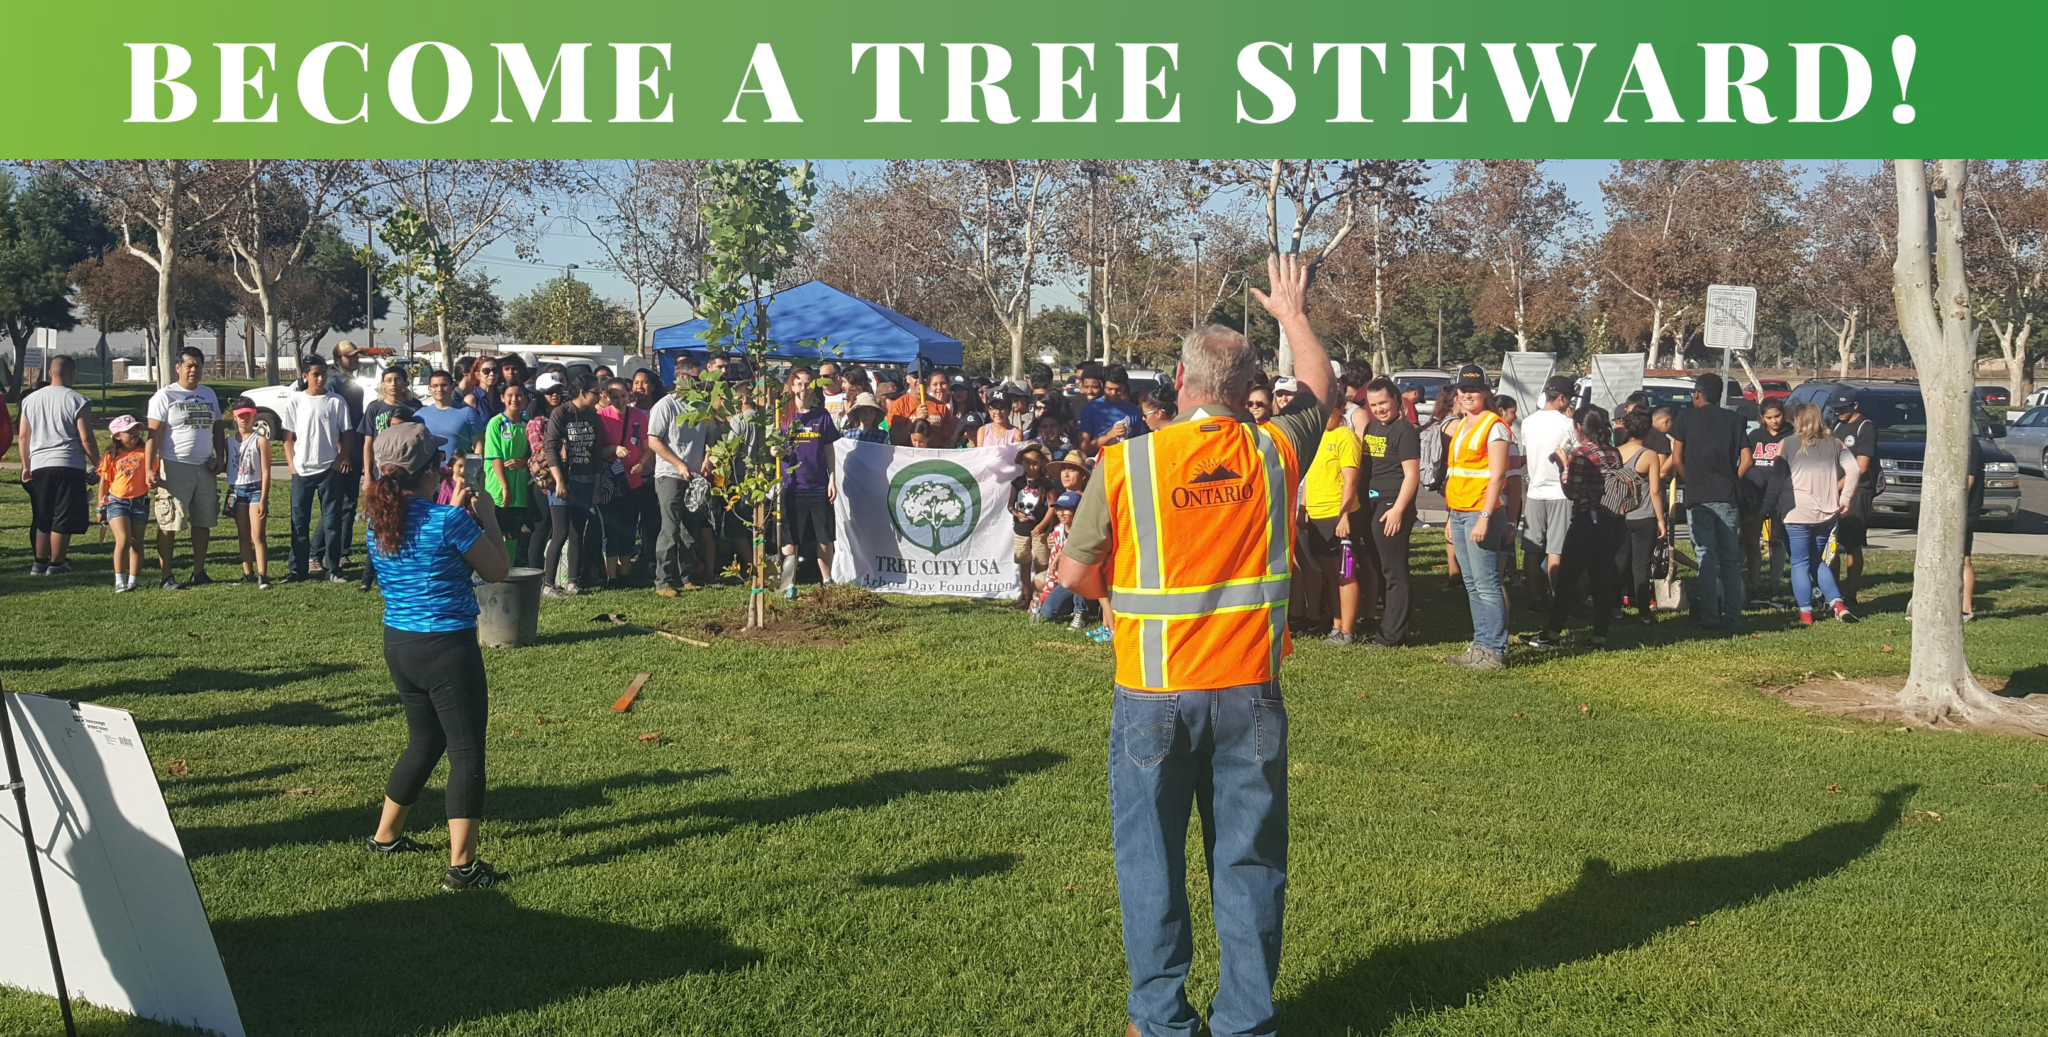 Become a Tree Steward!